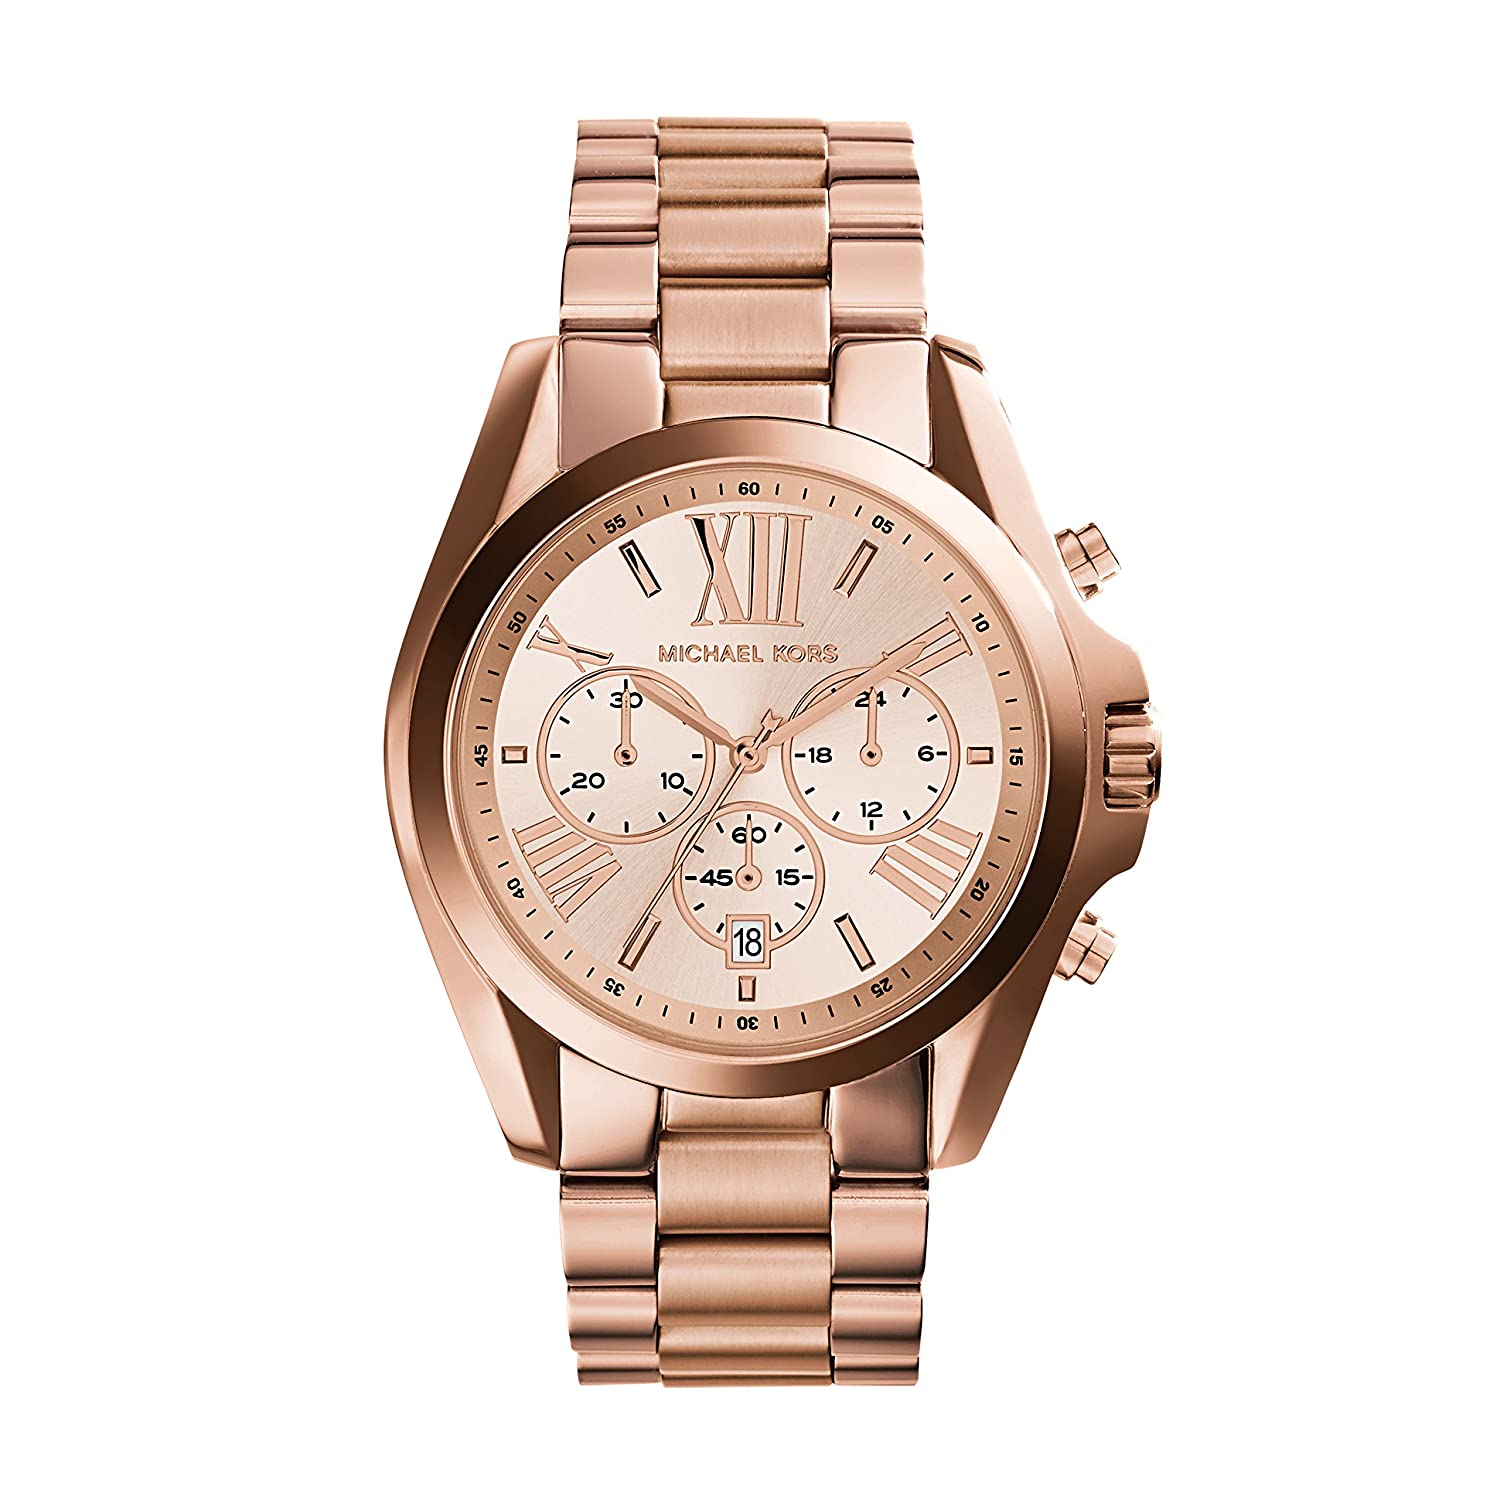 33019c71a3a0 Amazon.com  Michael Kors Roman Numeral Watch MK5503 Rose Gold  Michael Kors   Watches